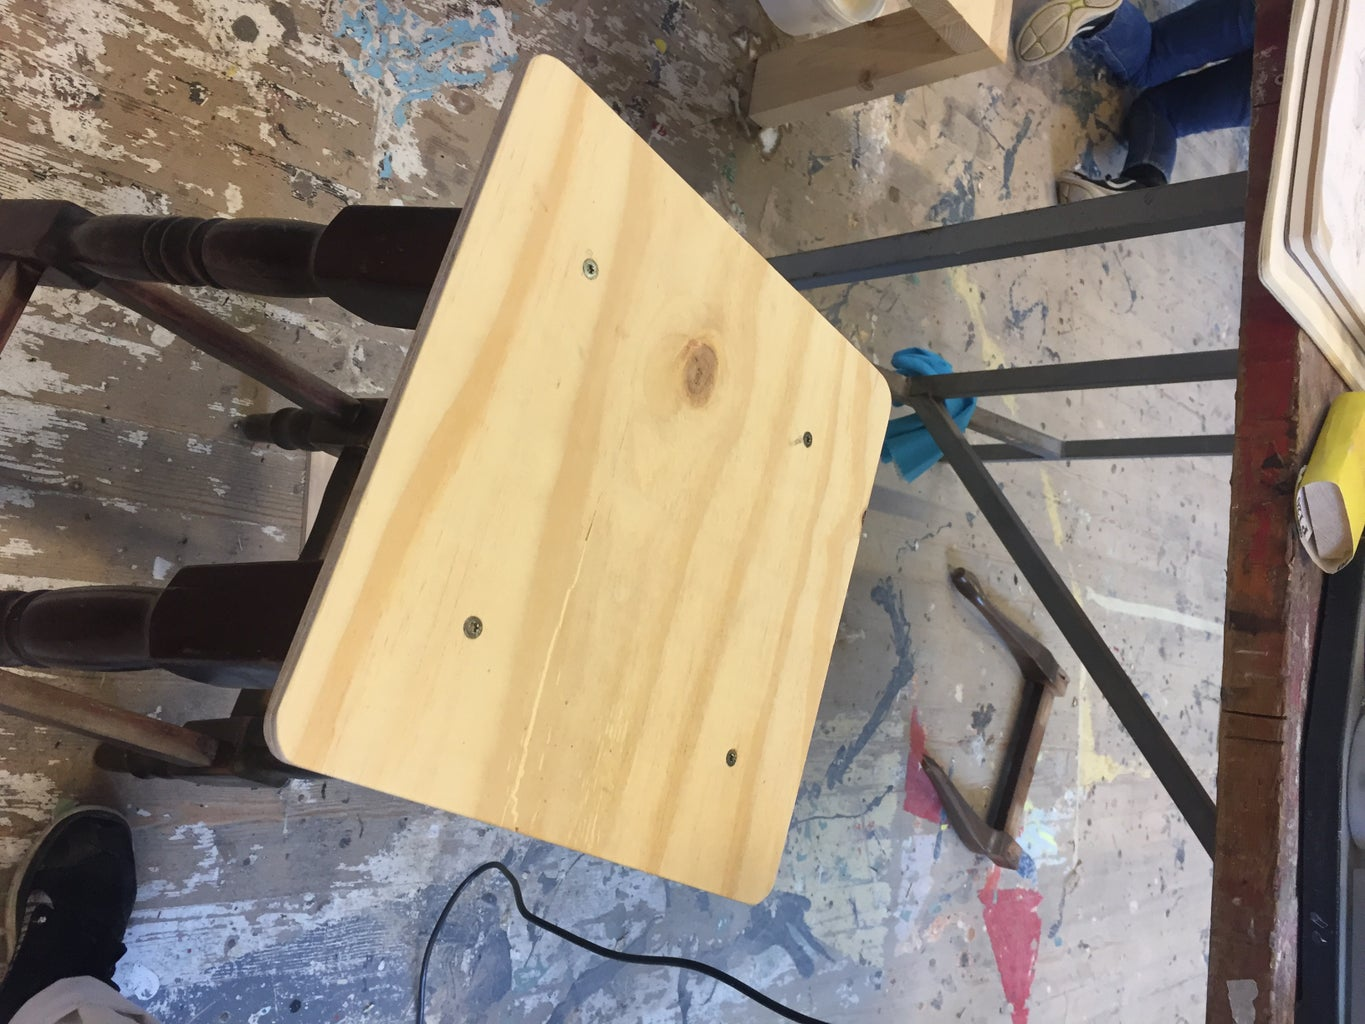 Attach the Wooden Seat to Your Stool: